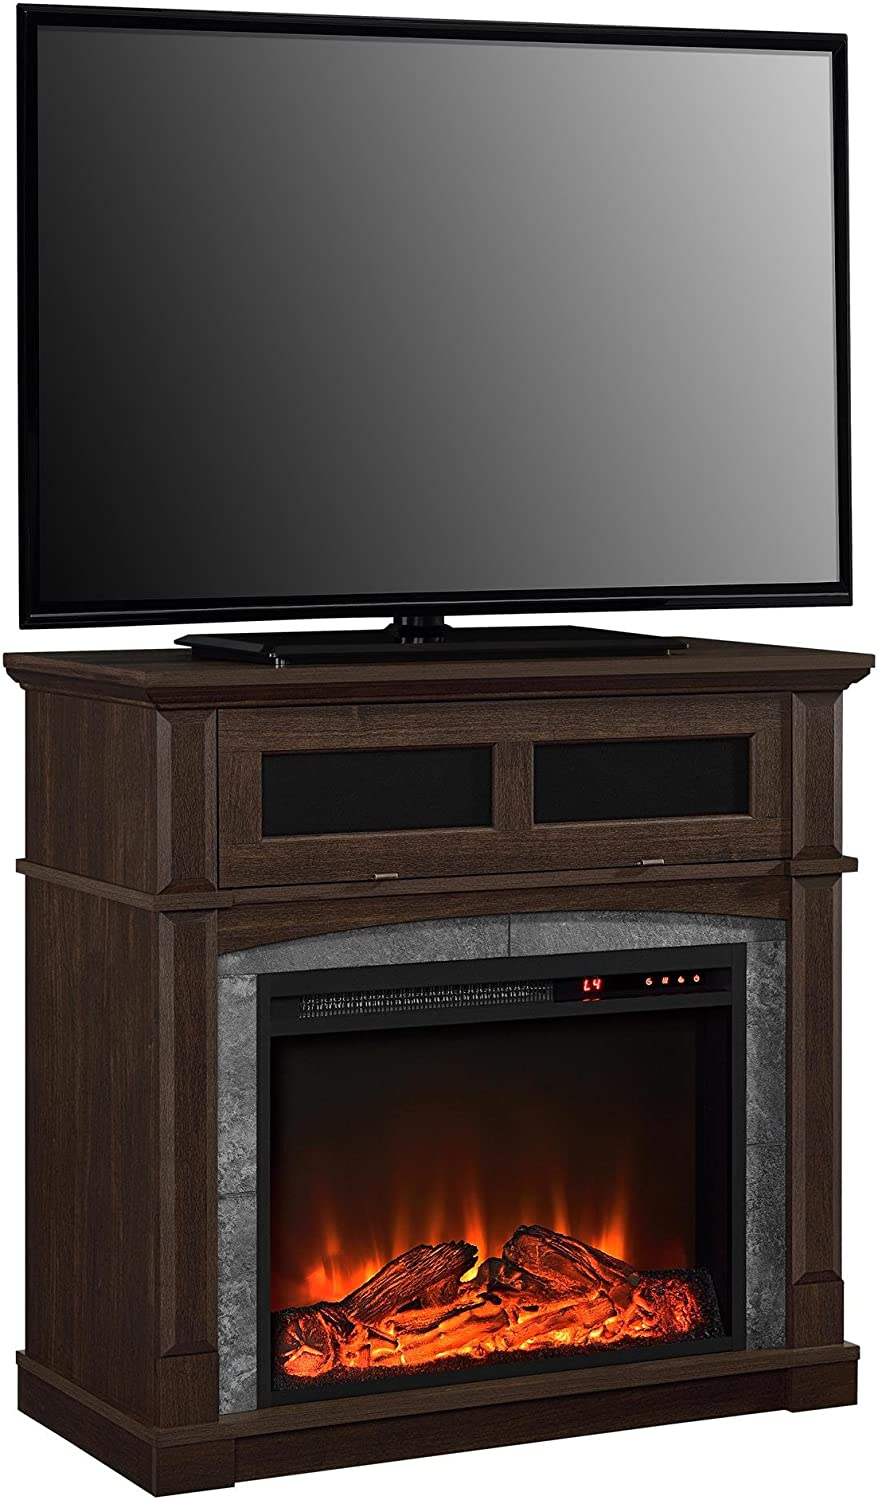 "Cherry Fireplace Tv Stand Beautiful Ameriwood Home Thompson Place Media Fireplace for Tvs Up to 37"" Cherry"